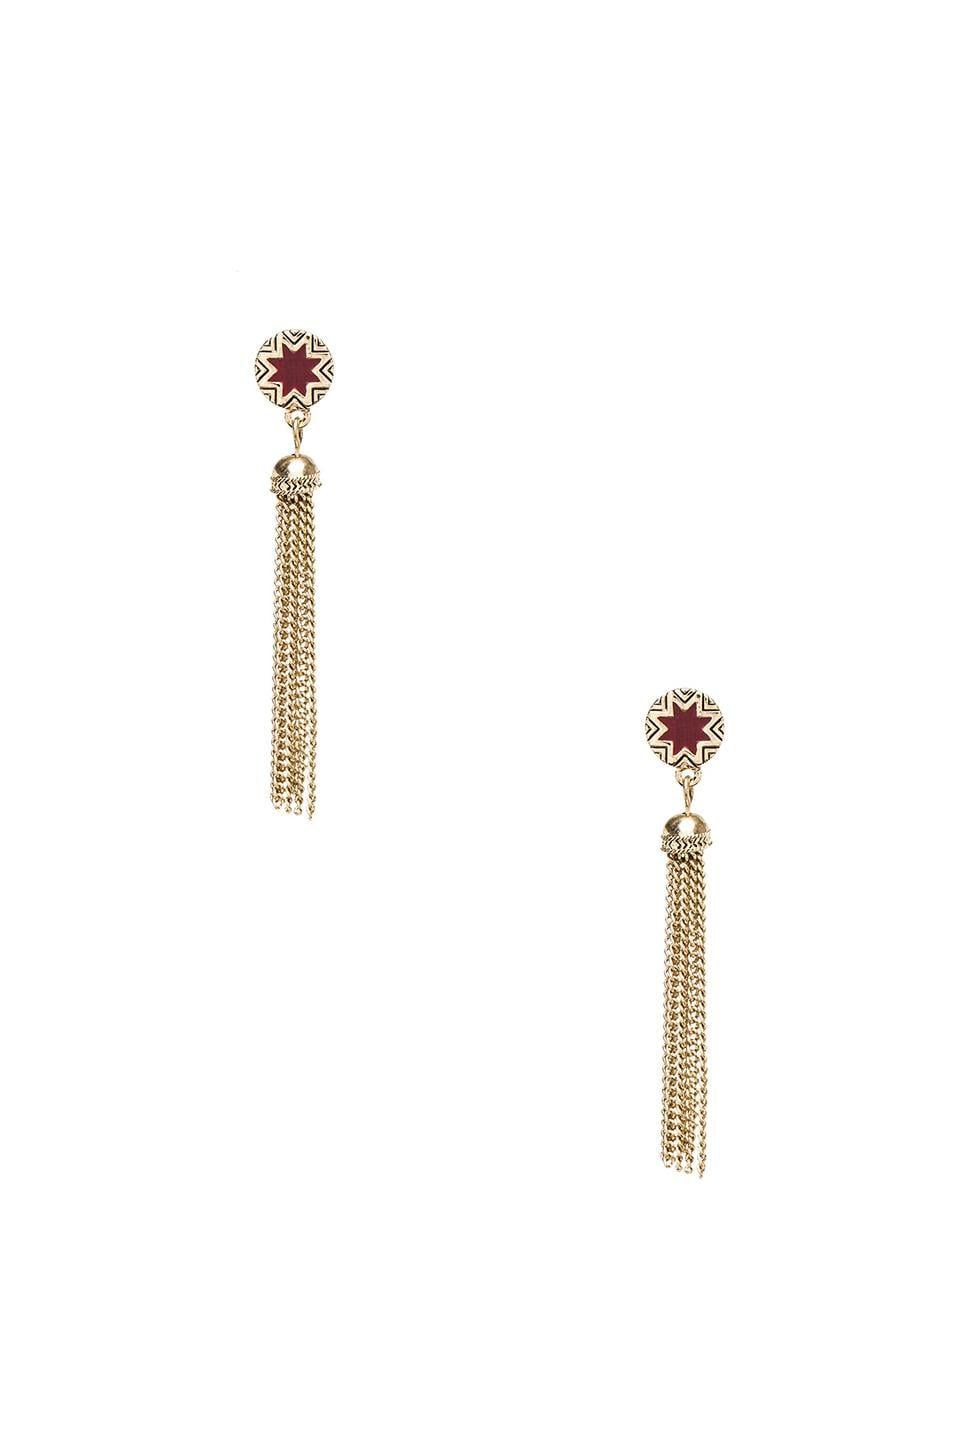 House of Harlow 1960 House of Harlow Sunburst Tassel Earrings in Gold Tone Cranberry